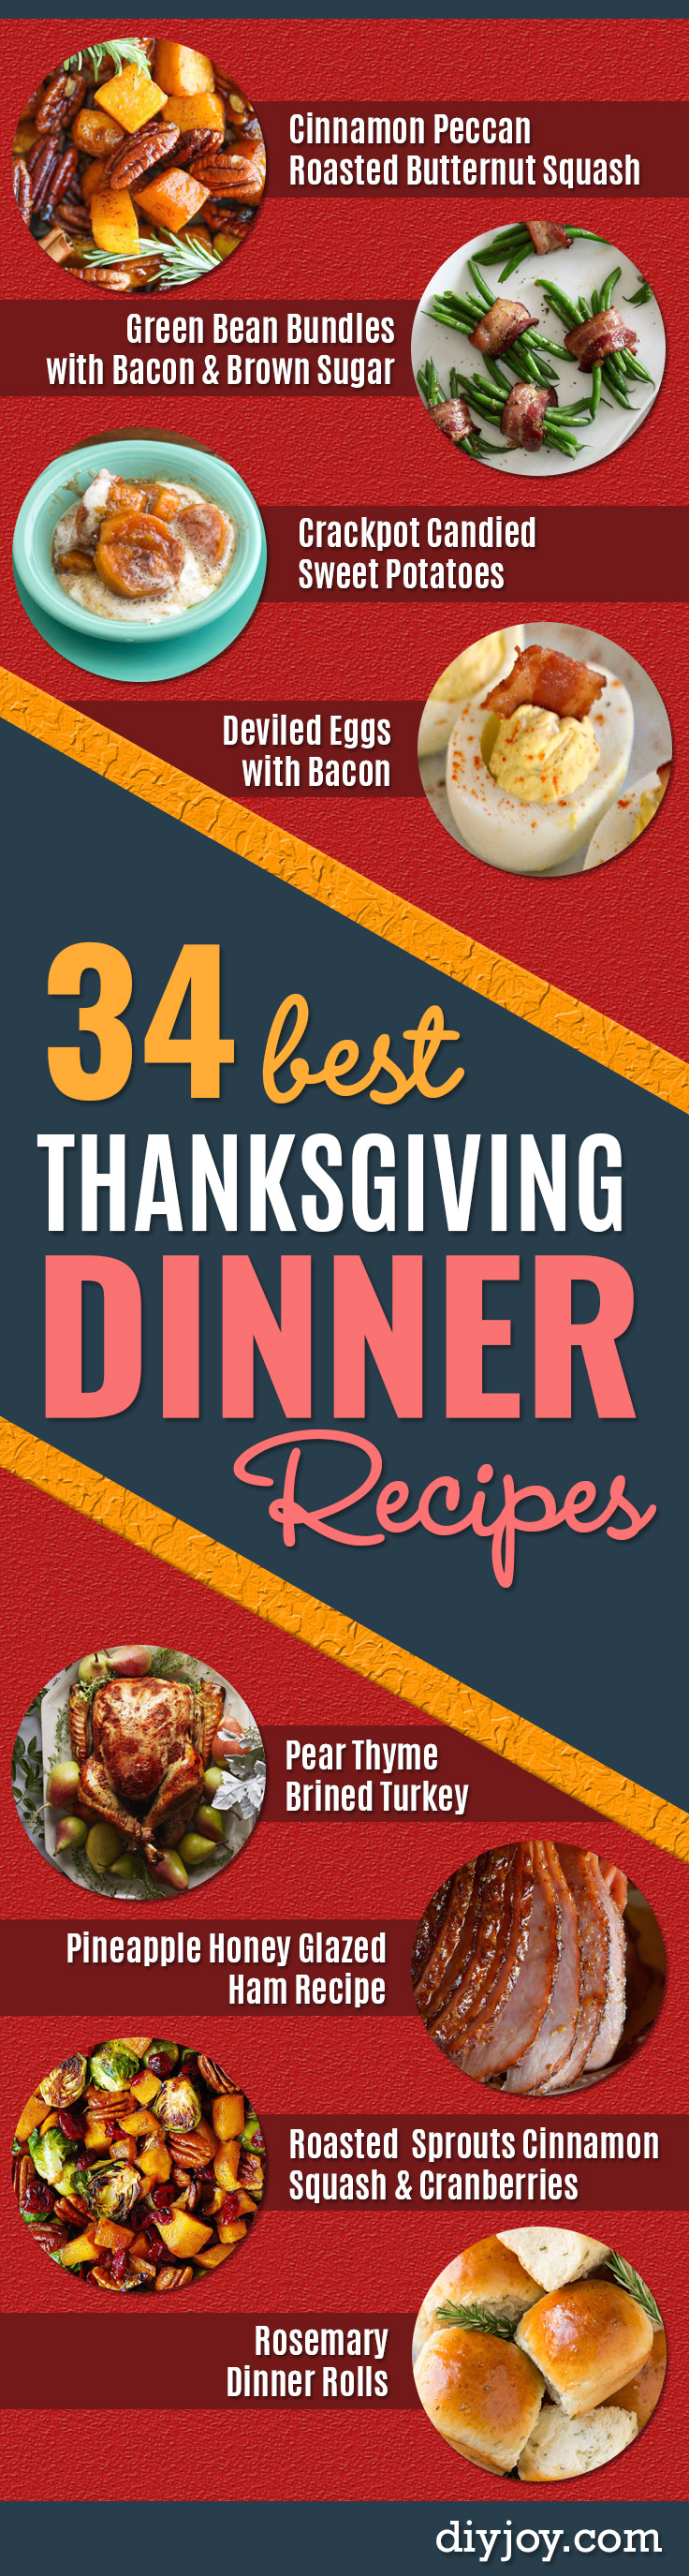 Best Thanksgiving Dinner Recipes - Easy DIY Desserts, Sides, Sauces, Main Courses, Vegetables, Pie and Side Dishes. Simple Gravy, Cranberries, Turkey and Pies With Step by Step Tutorials http://diyjoy.com/best-thanksgiving-dinner-recipes